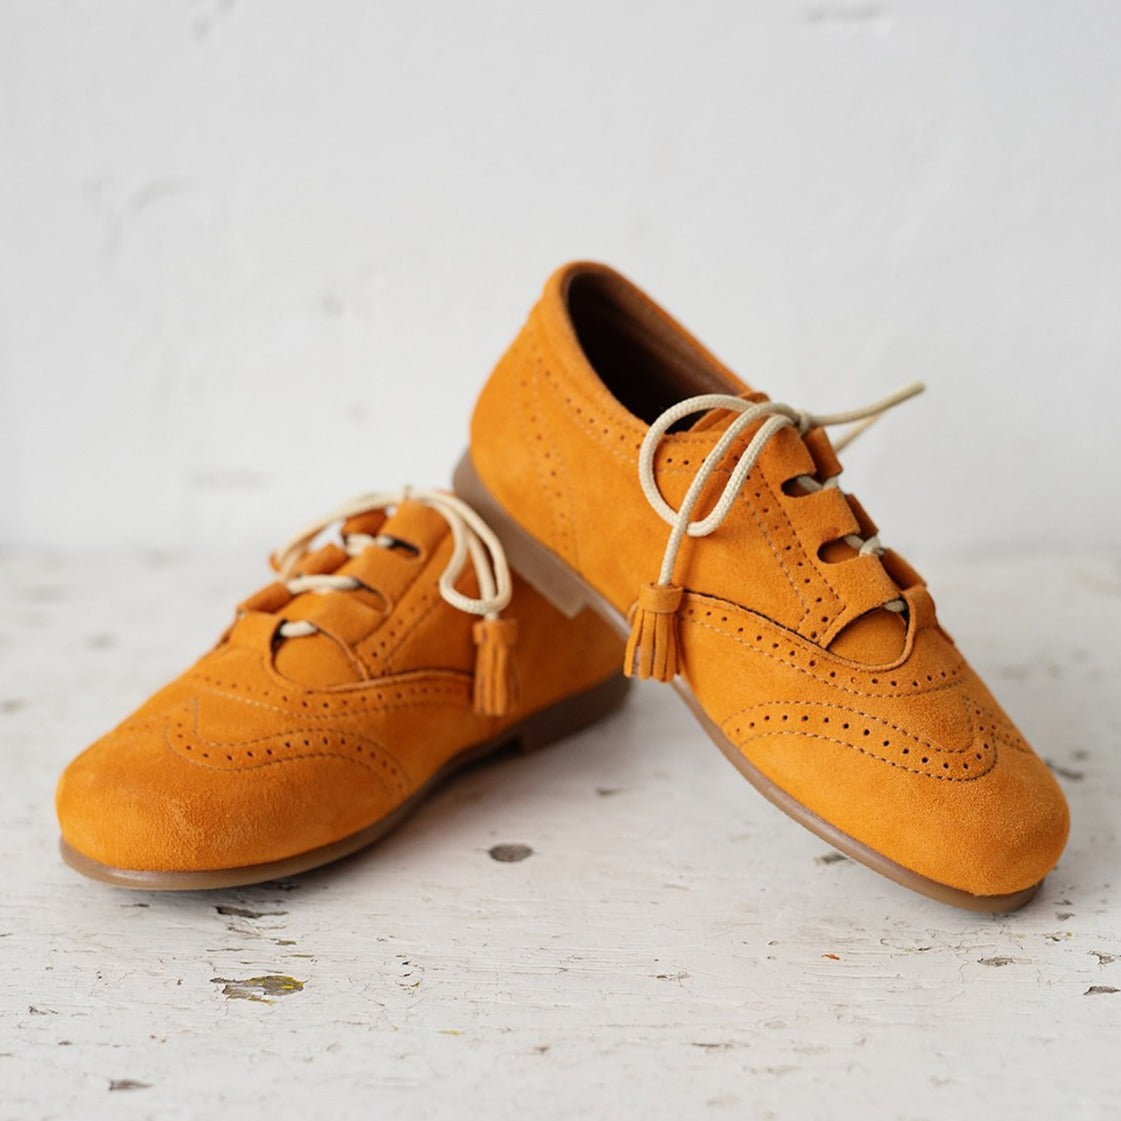 Beautiful smart-casual style lace-up brogue shoes. Made with an adorable mustard colour suede with contrast cream laces and a lovely tassel detail. Olivia Ann Shoes.